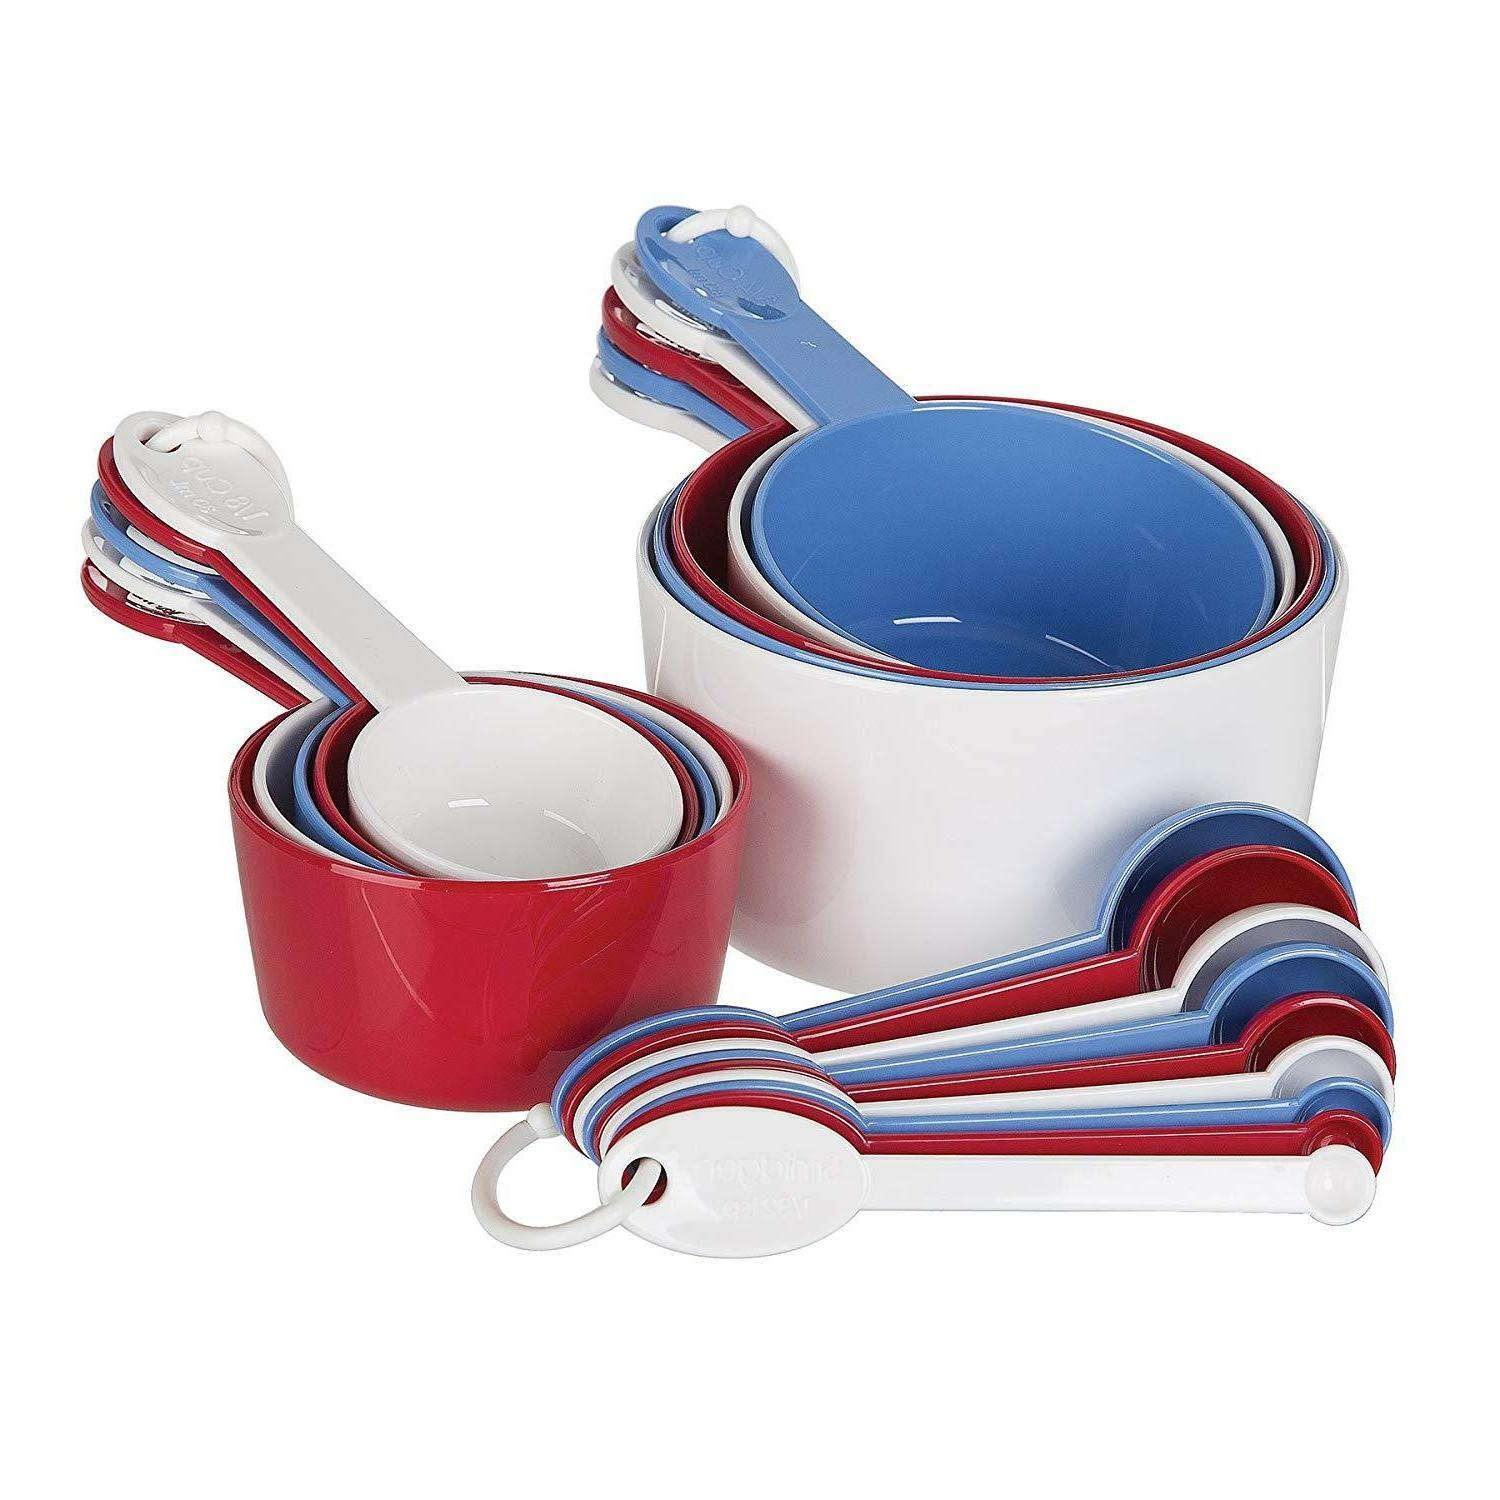 Measuring Cup and Spoon Set Kitchen Weight Utensil New